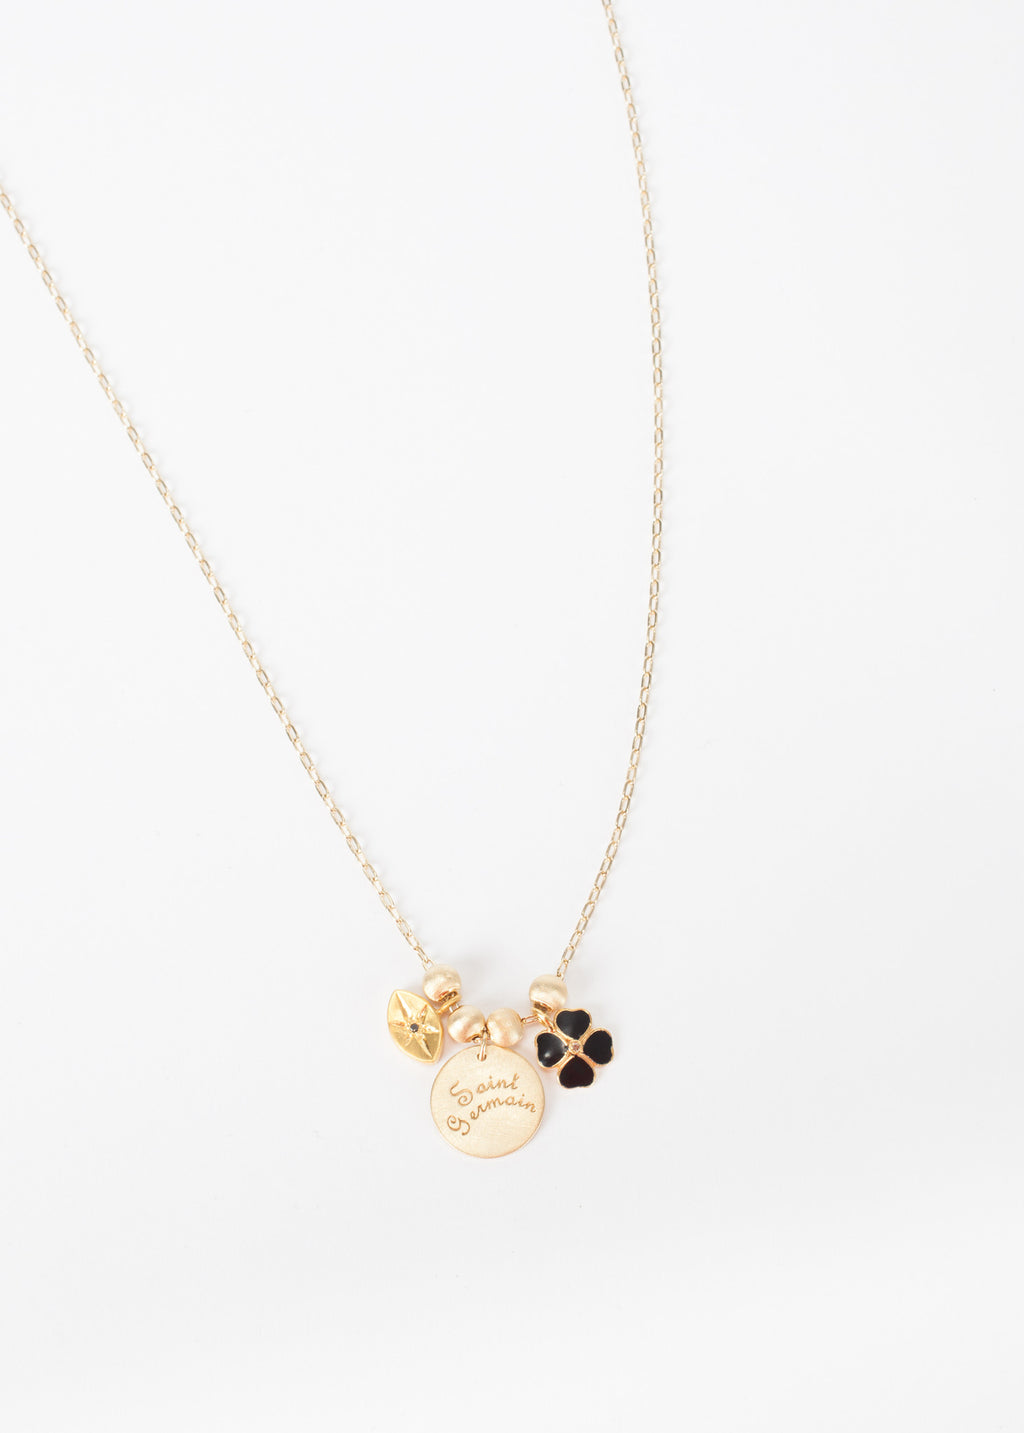 Clove Necklace